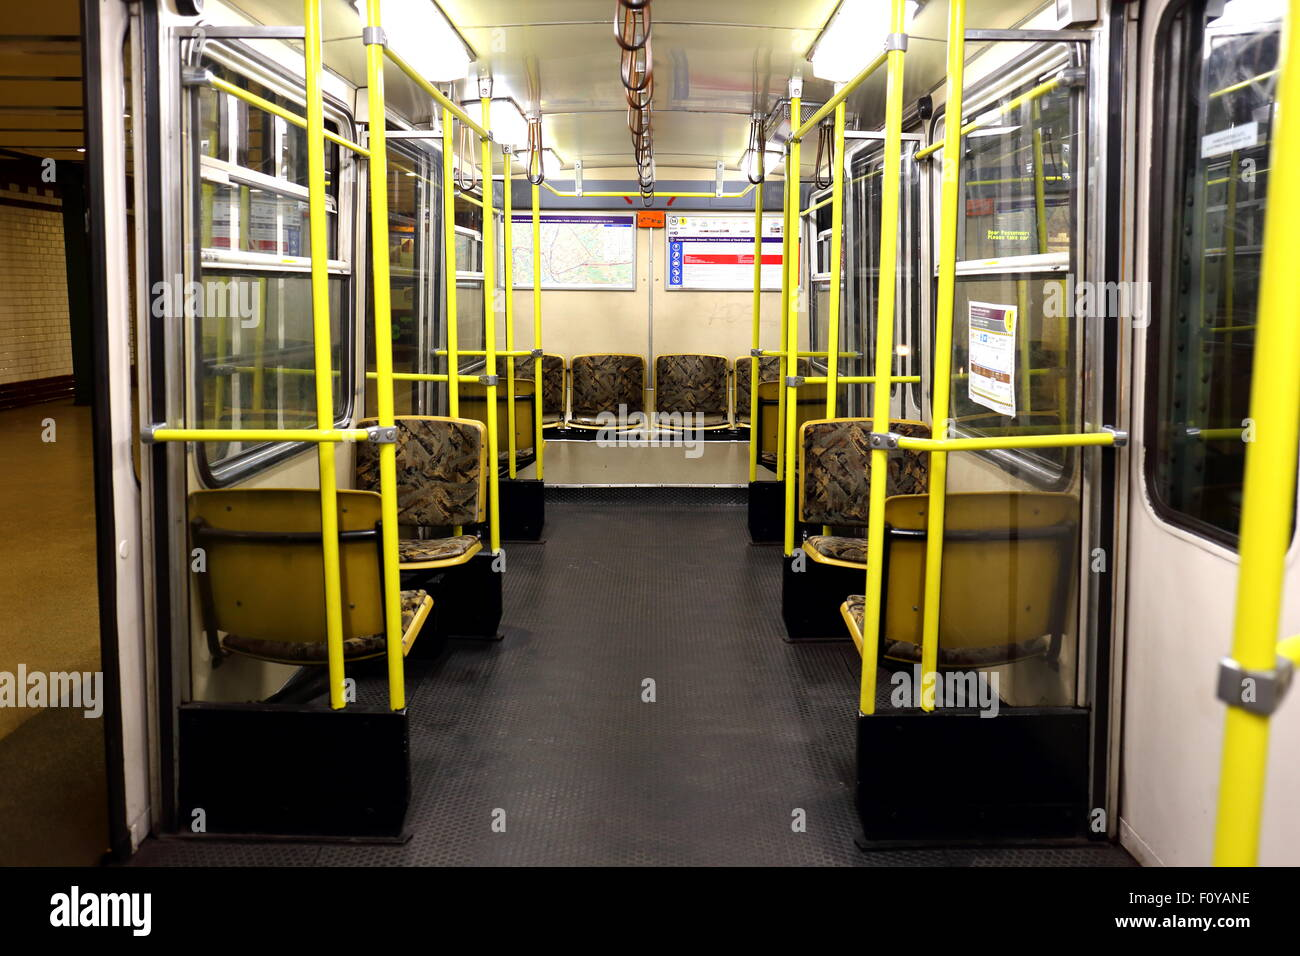 Inside a carriage on budapest 39 s metro line 1 m1 the yellow line stock photo royalty free - Carrage metro ...